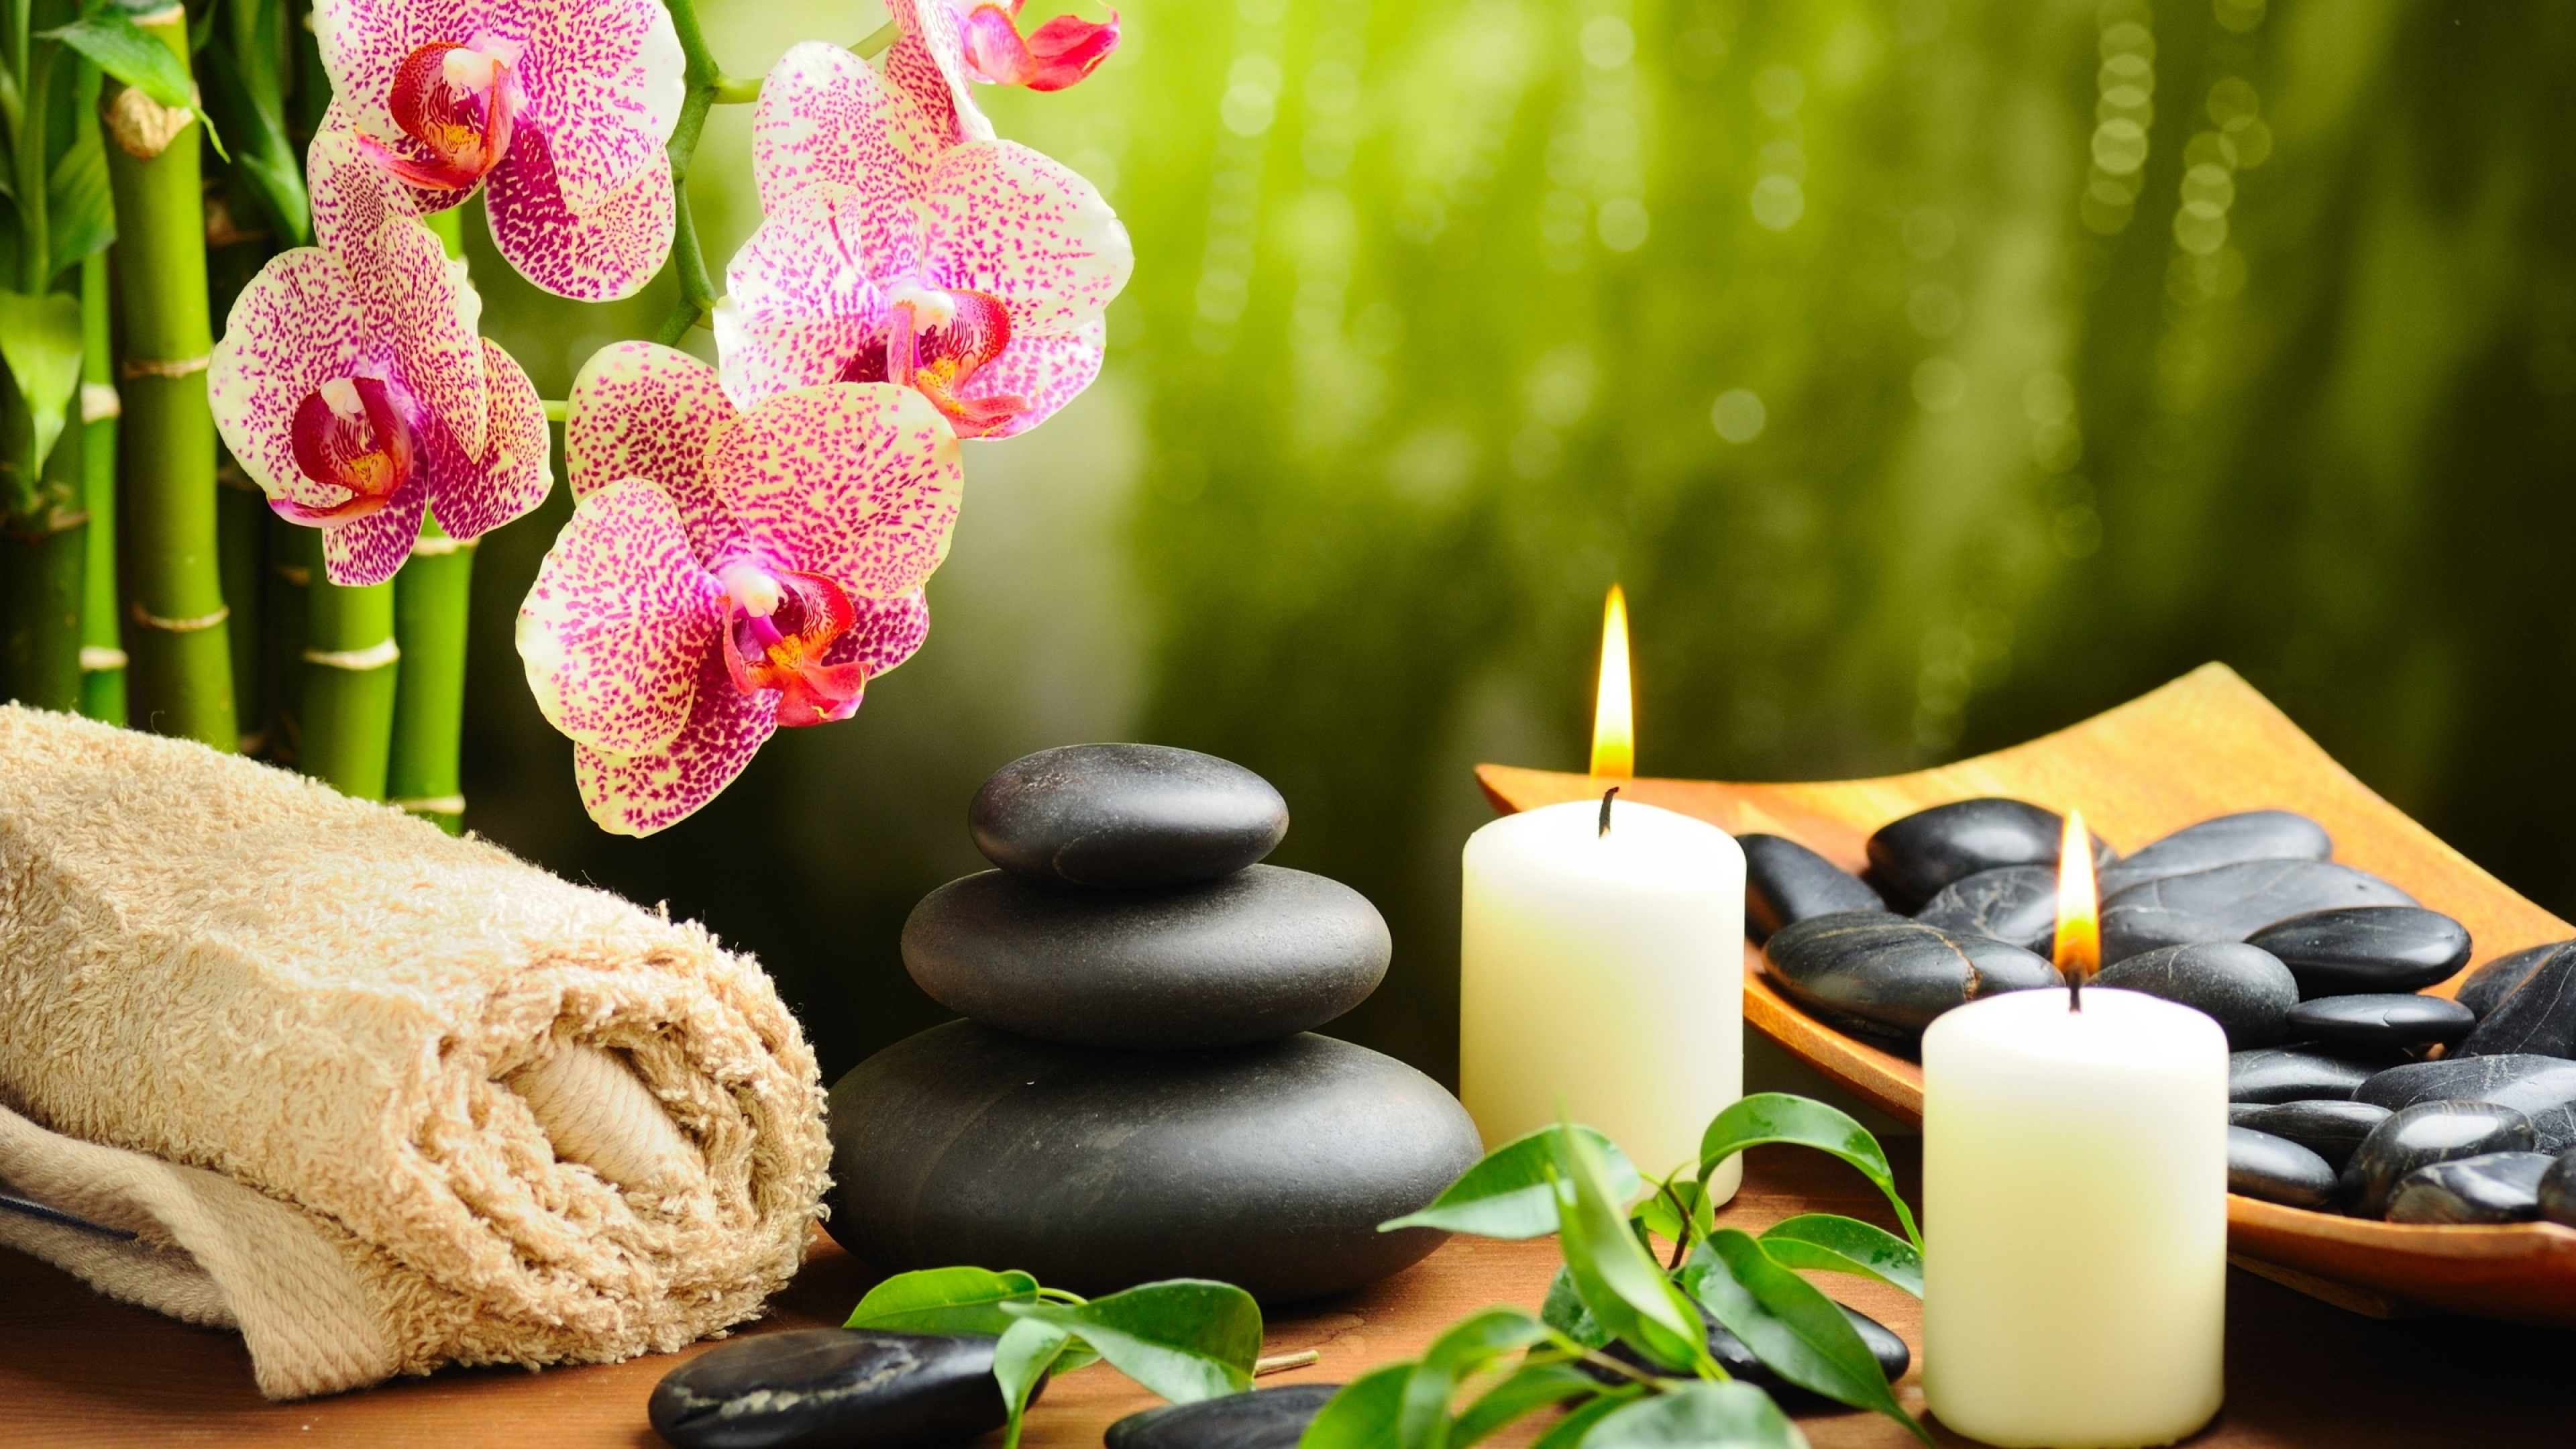 orchid_stones_candles_towels_68114_3840x2160